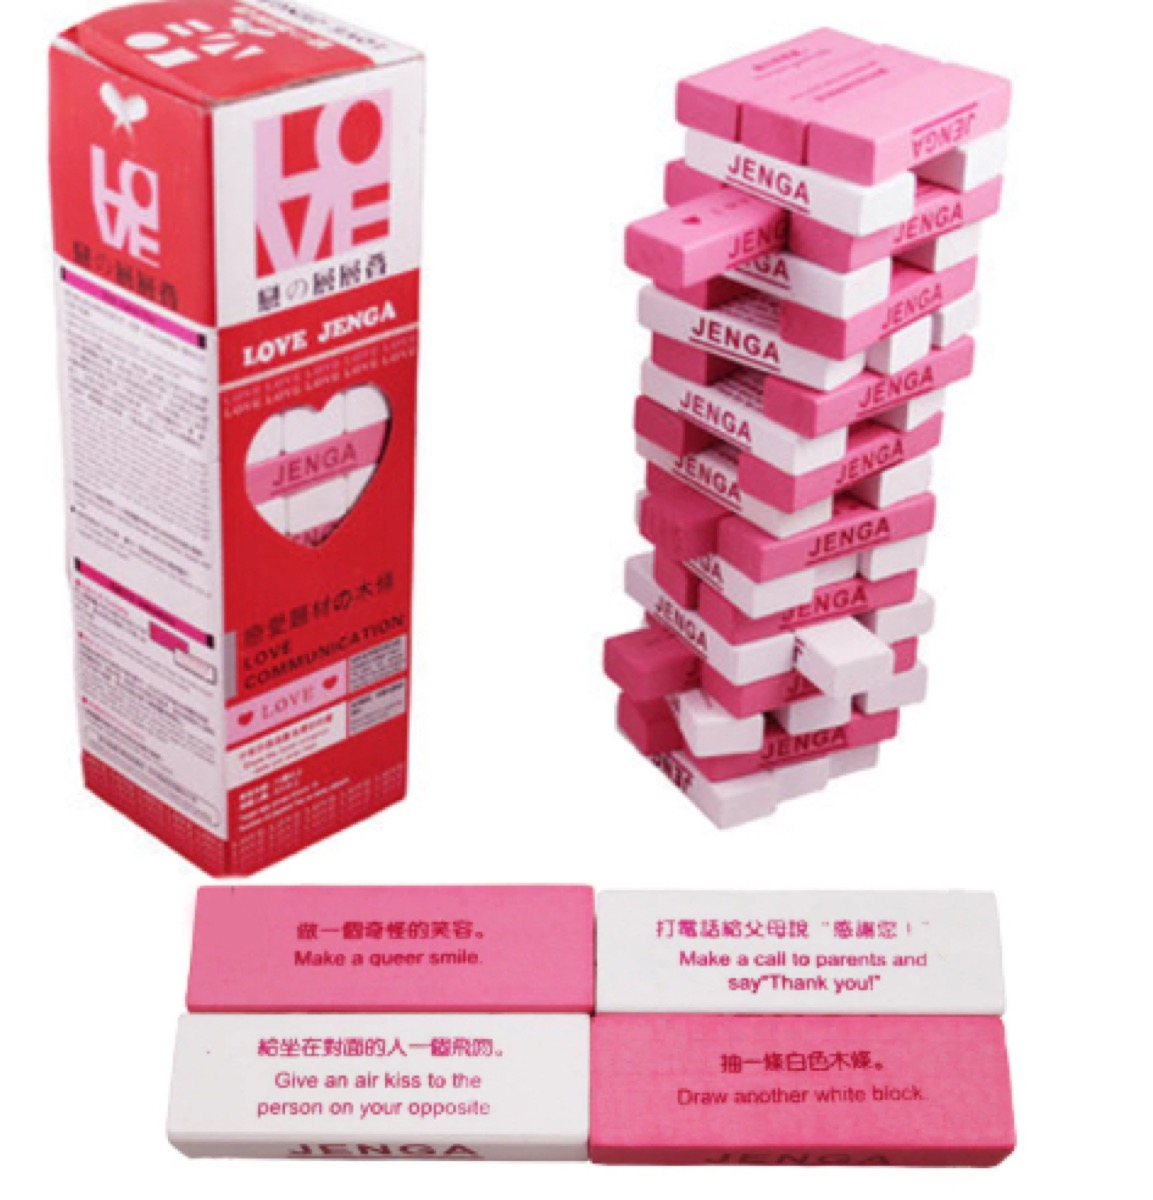 Love Jenga board games for couples